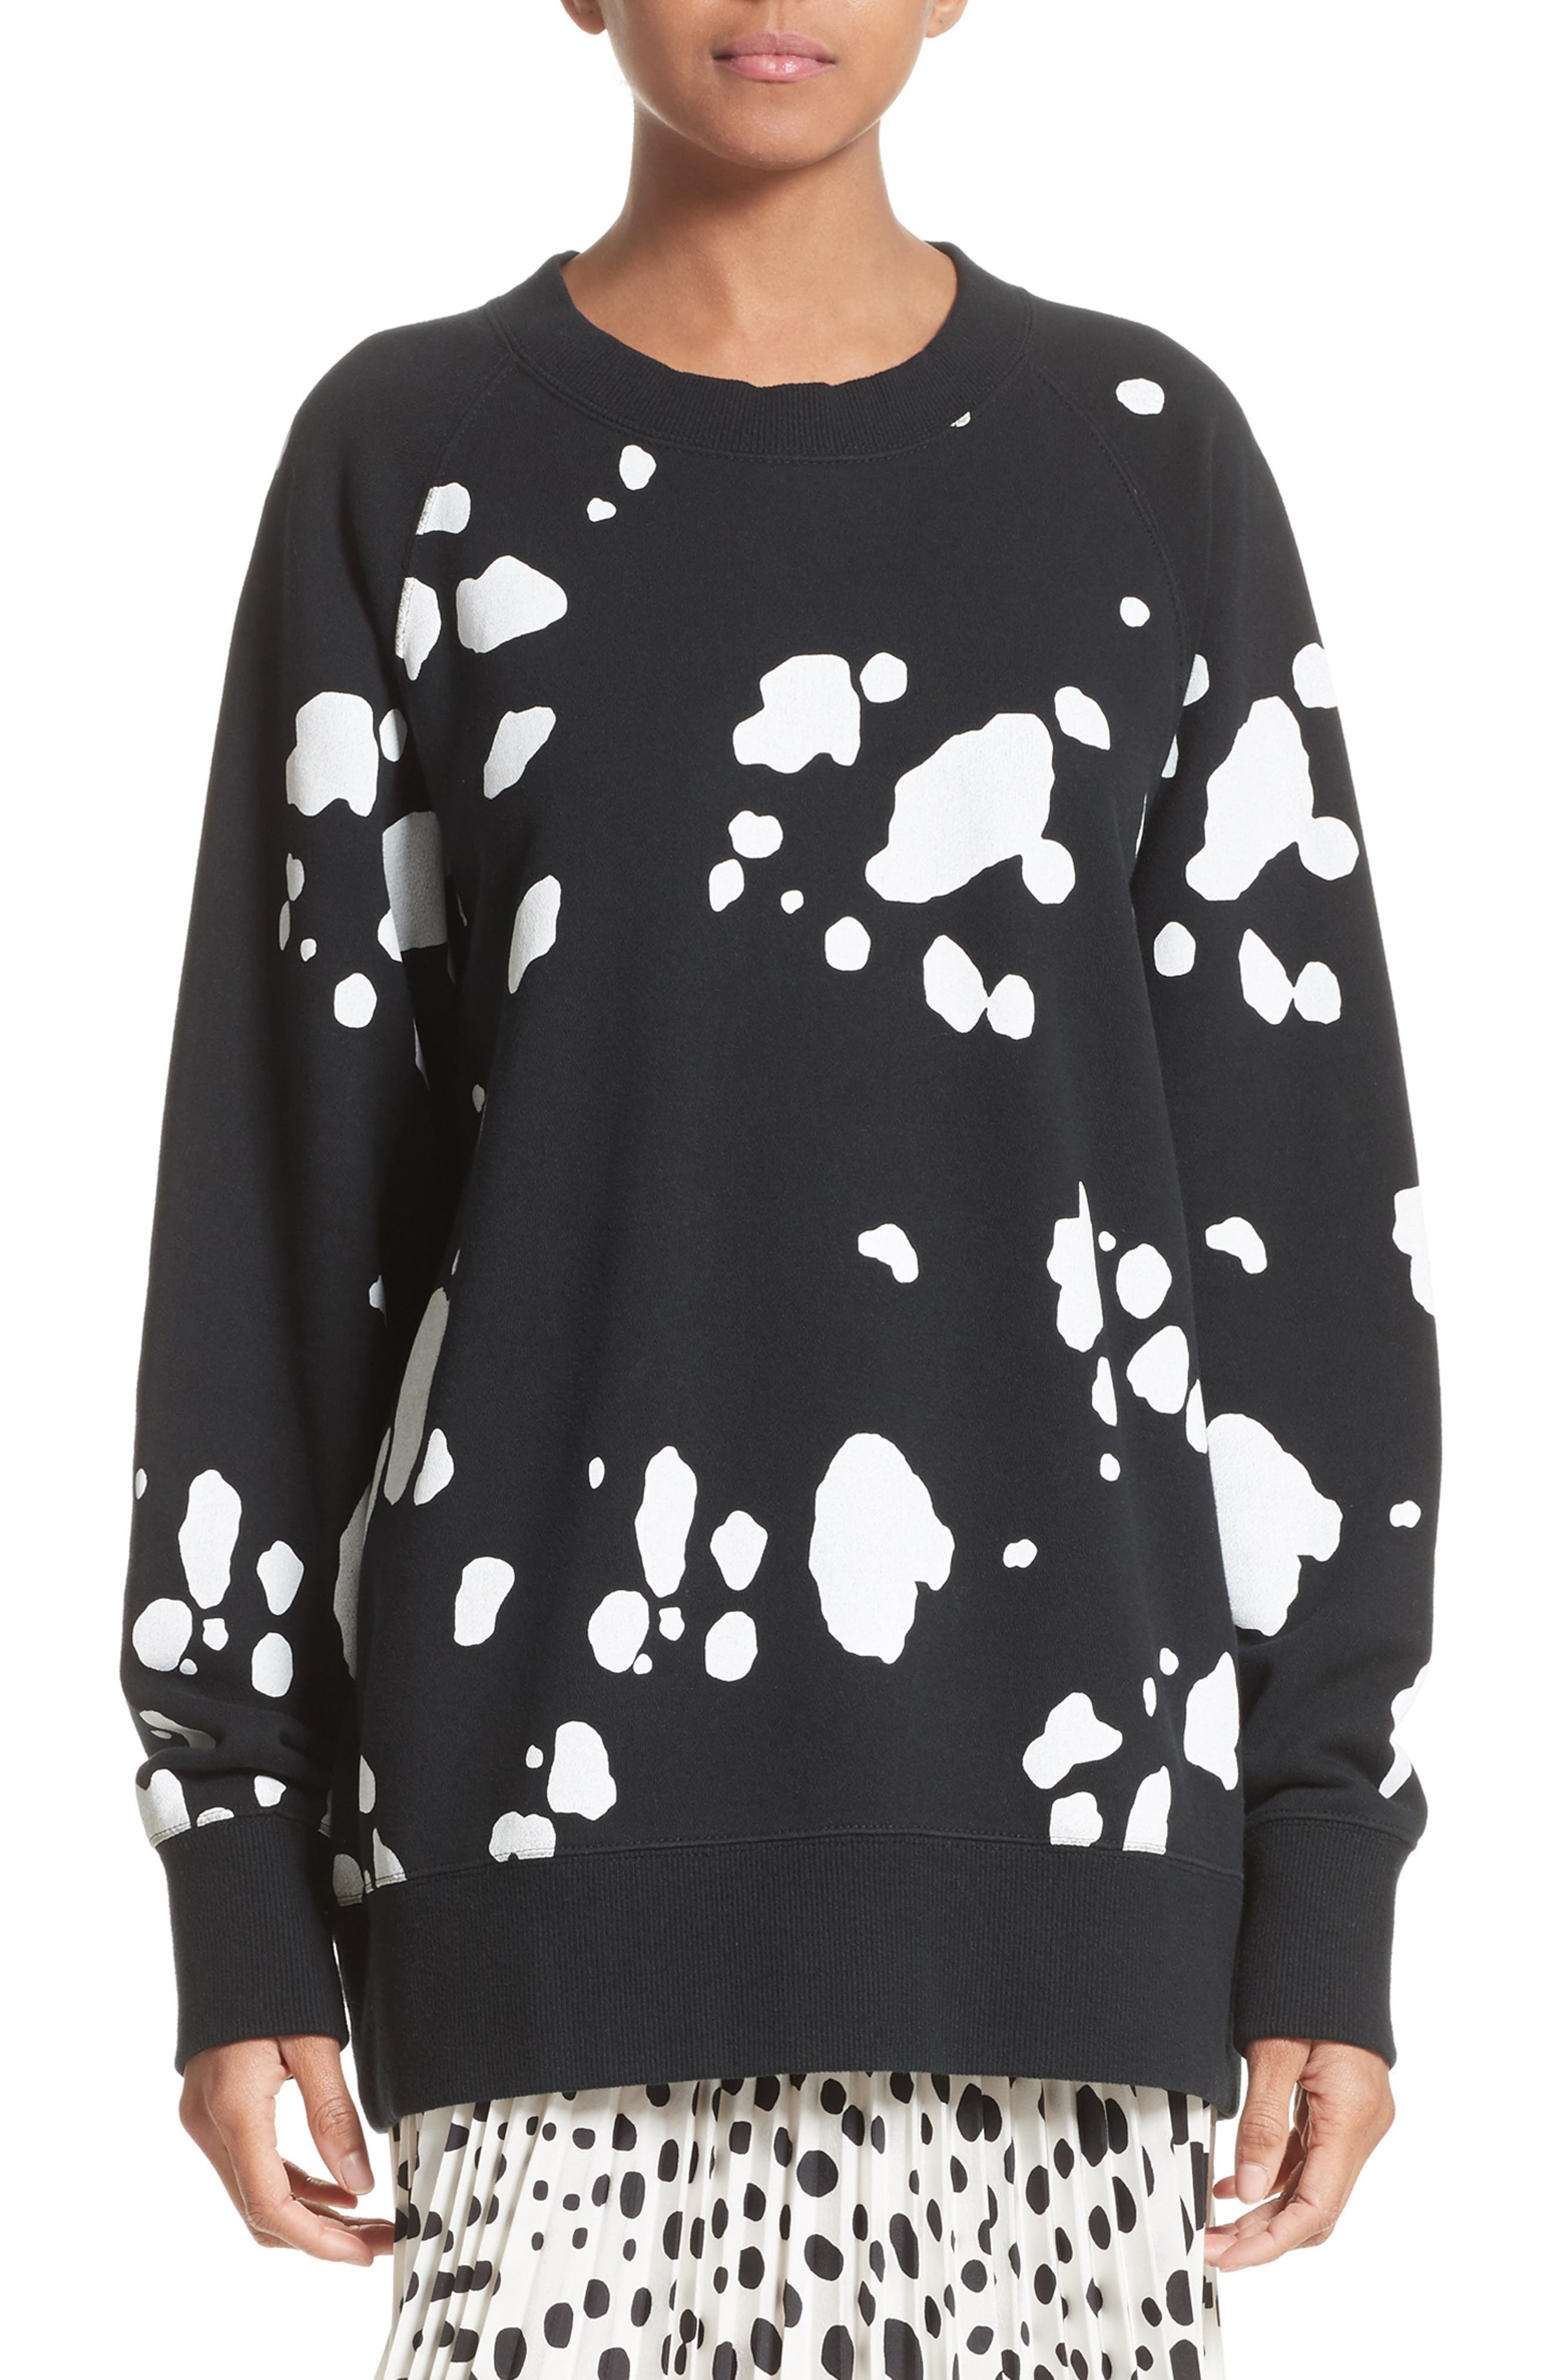 Dalmatian Print Sweatshirt,                         Main,                         color, Black Multi